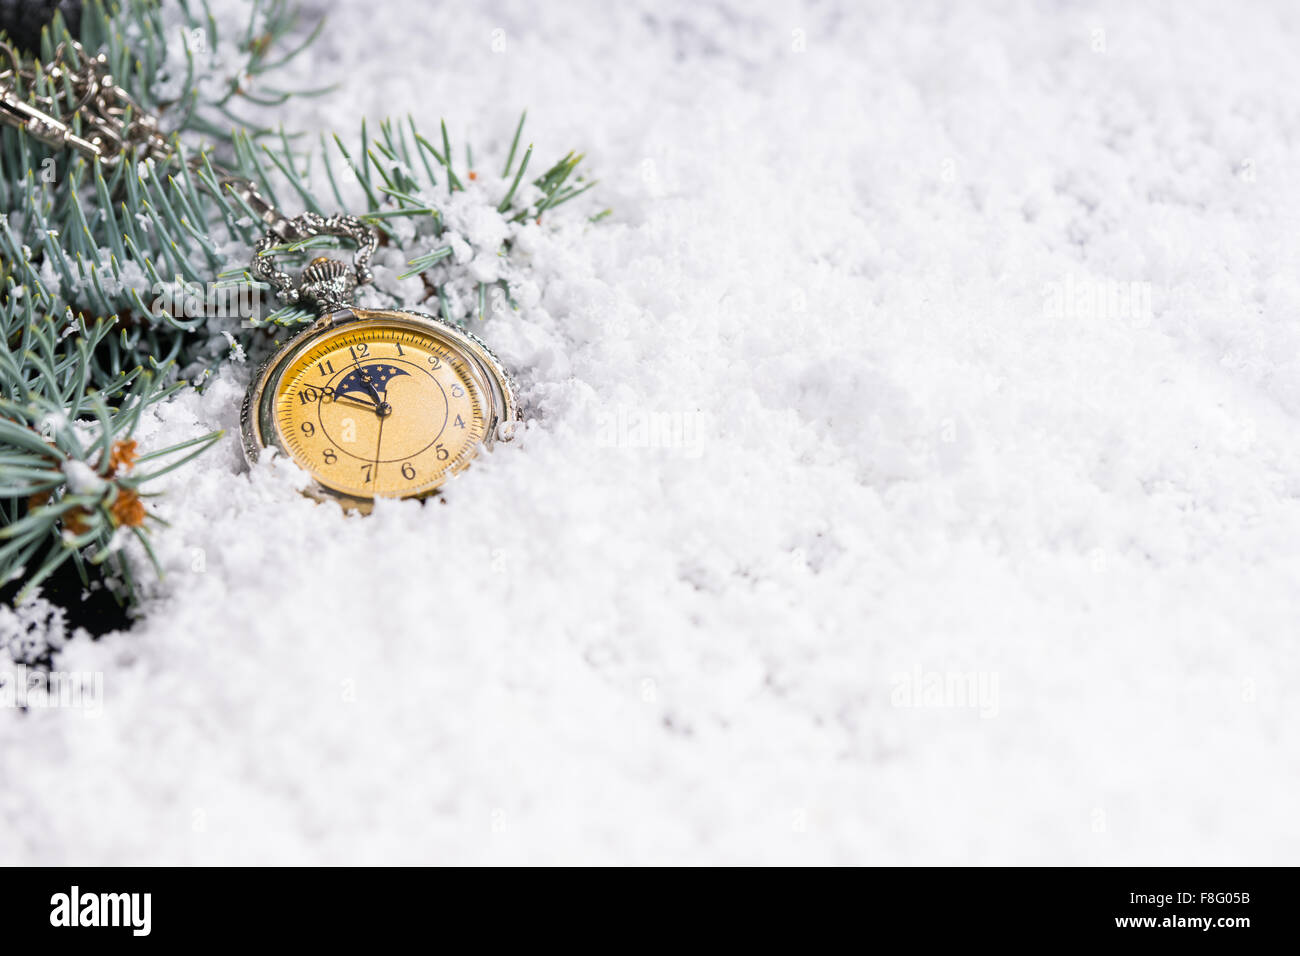 new year background with green pine branches and a vintage yellow clock on white snow at midnight